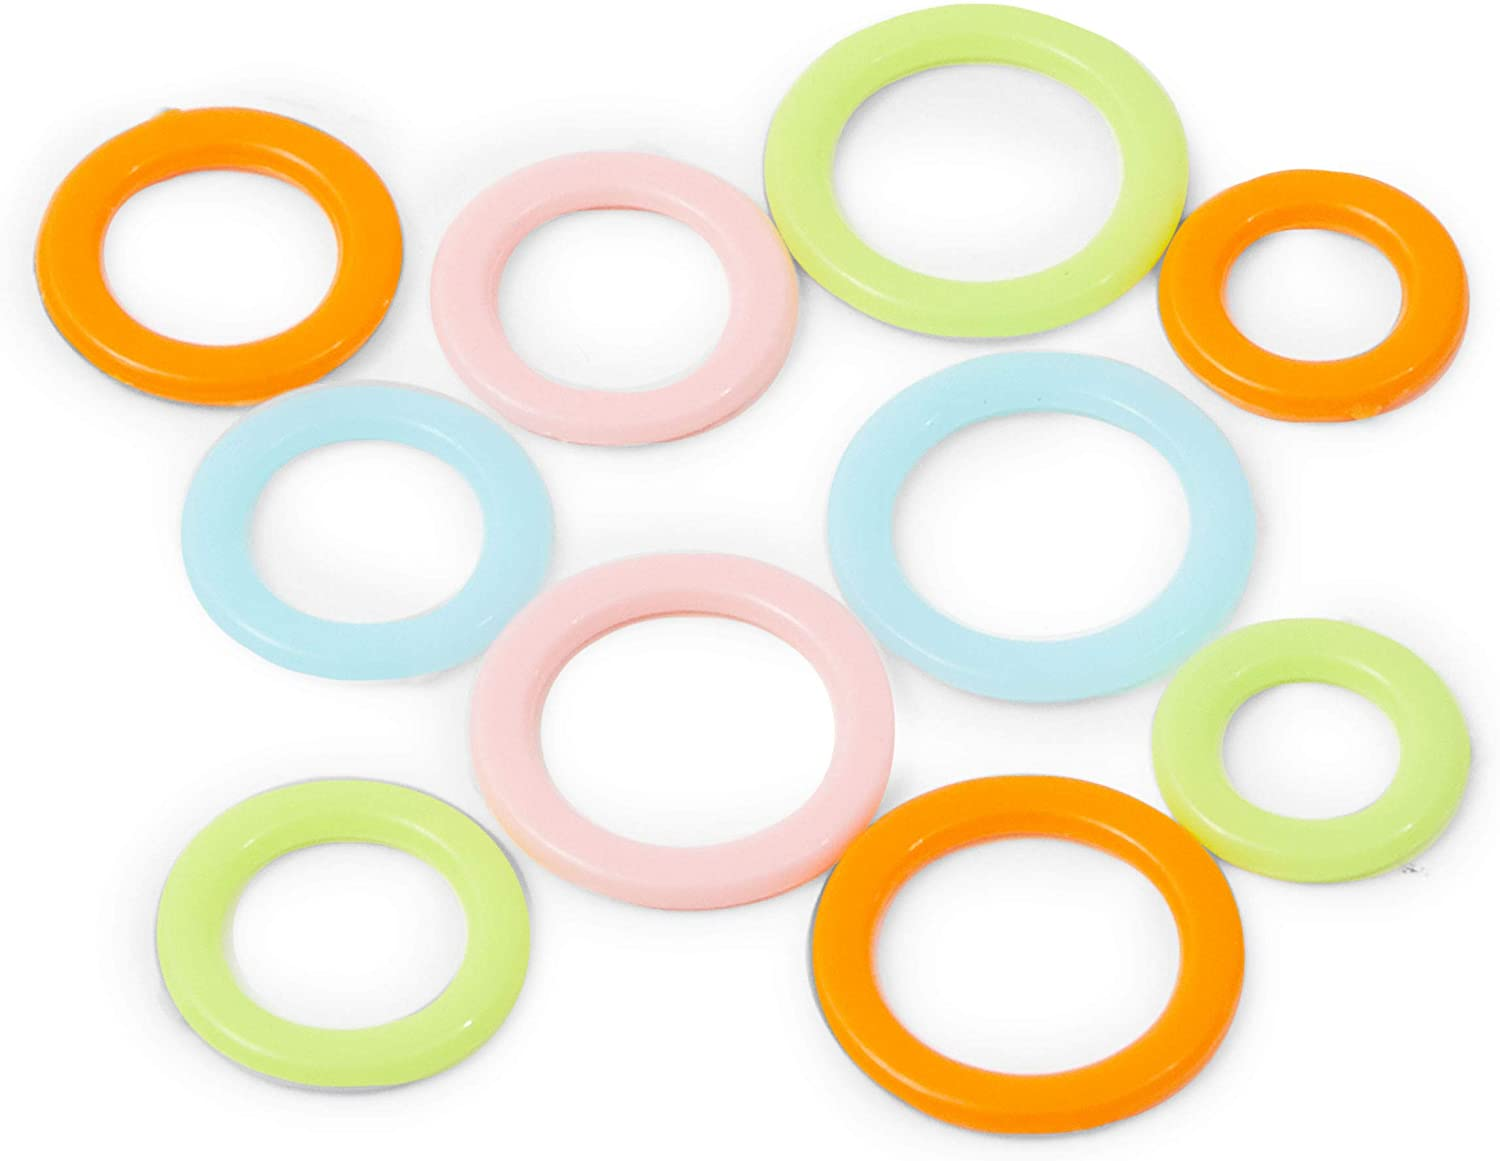 180 Pieces Knitting Stitch Markers Rings with Storage Box